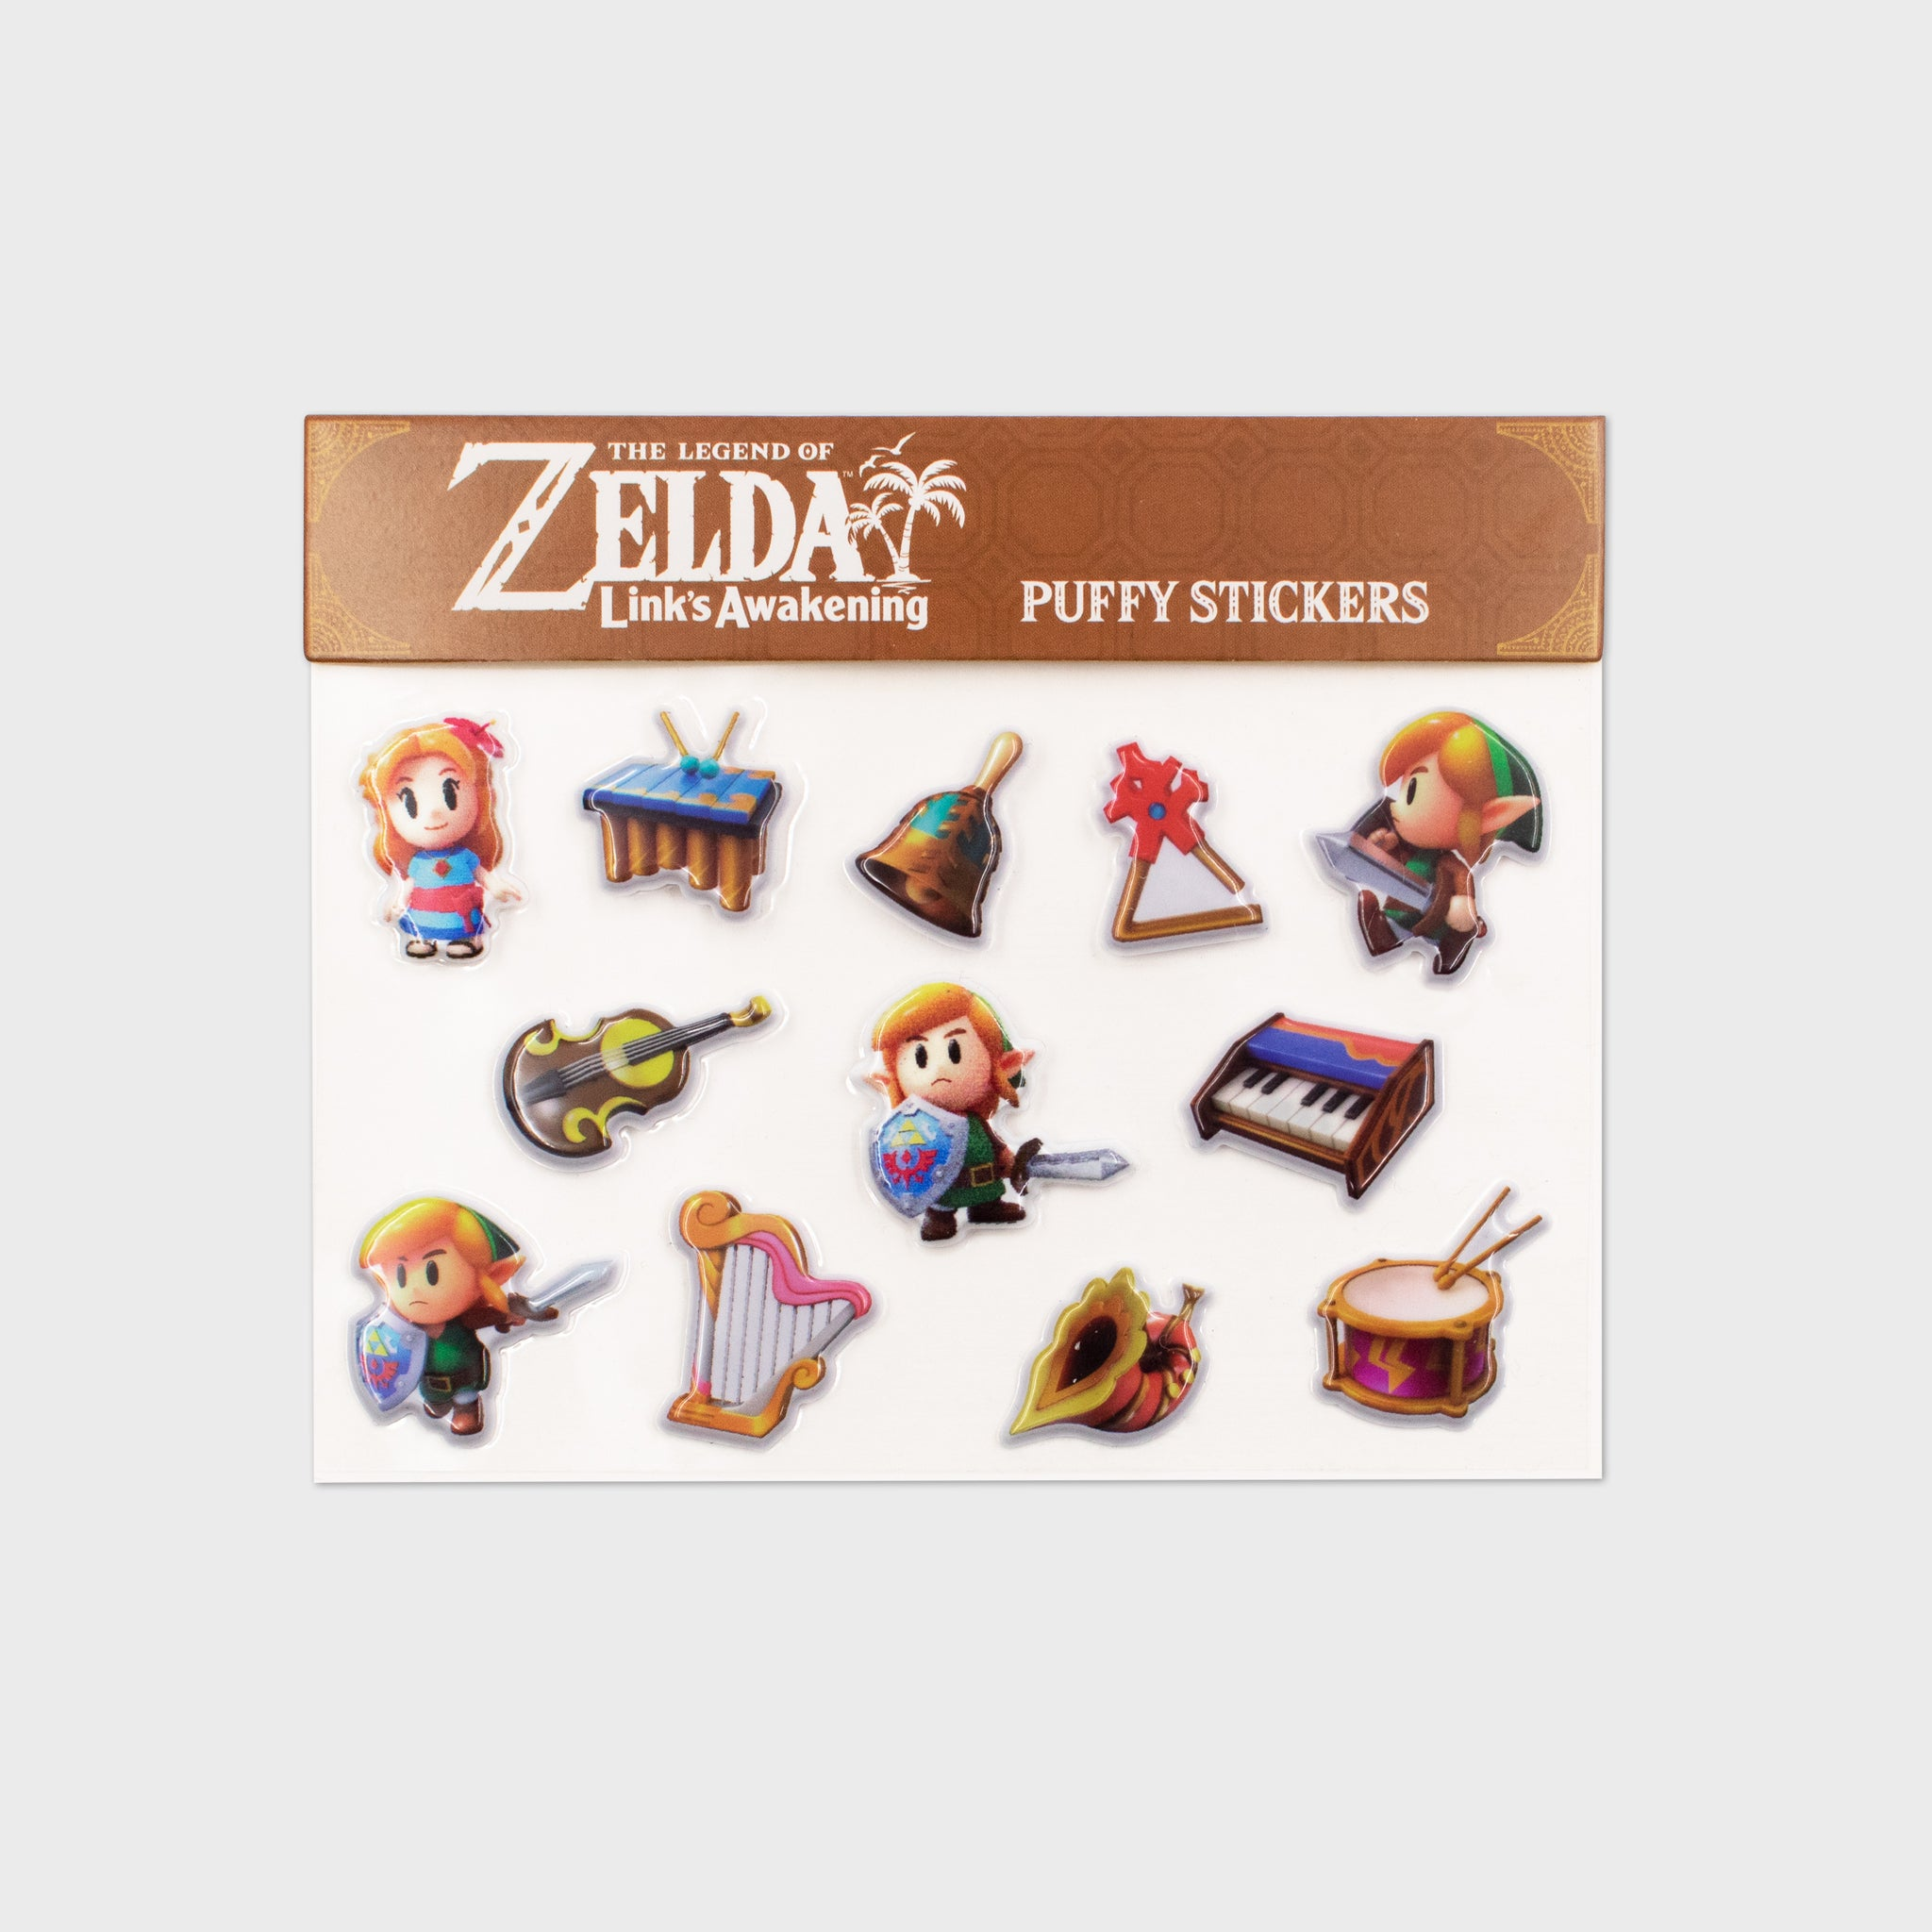 the legend of zelda link's awakening 2019 nintendo loz collector's box exclusive collectible puffy stickers culturefly